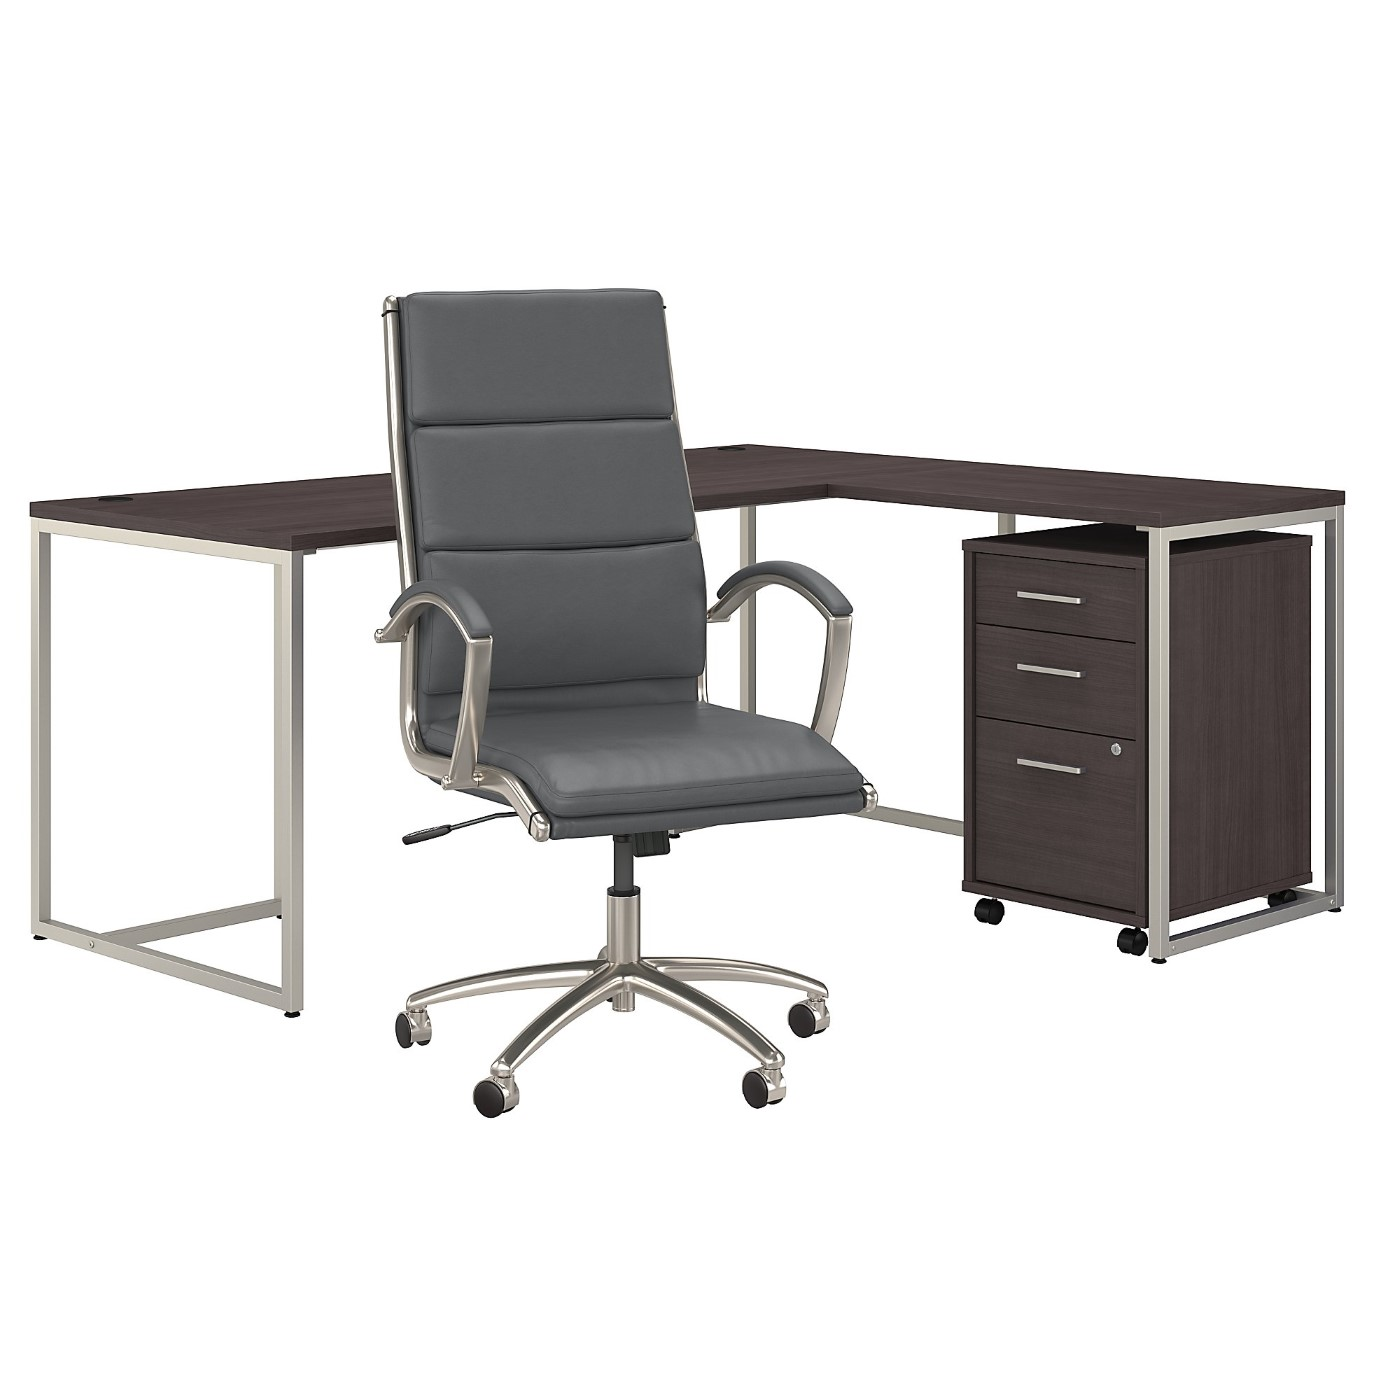 OFFICE BY KATHY IRELAND� METHOD 72W L SHAPED DESK WITH CHAIR AND MOBILE FILE CABINET. FREE SHIPPING